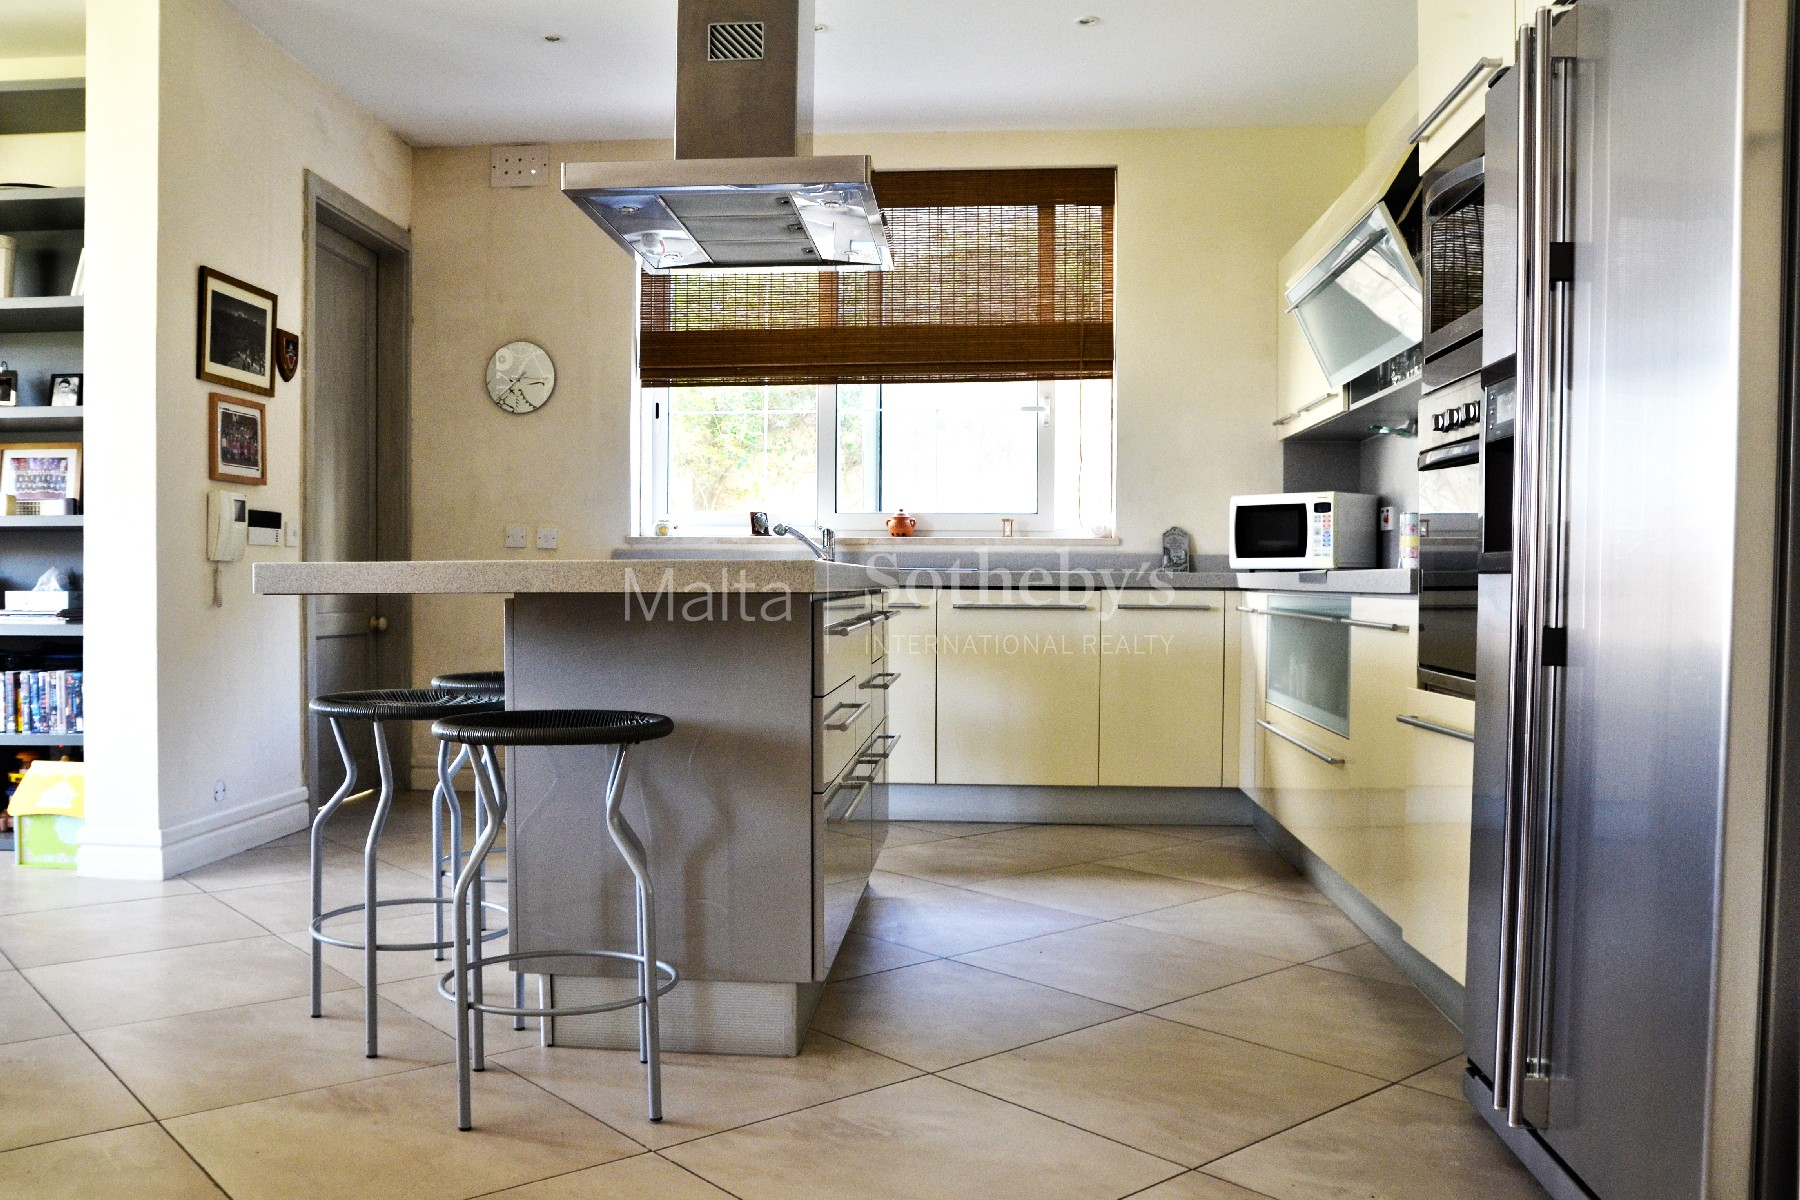 Additional photo for property listing at Semi Detached Villa Balzan Balzan, Central Malta